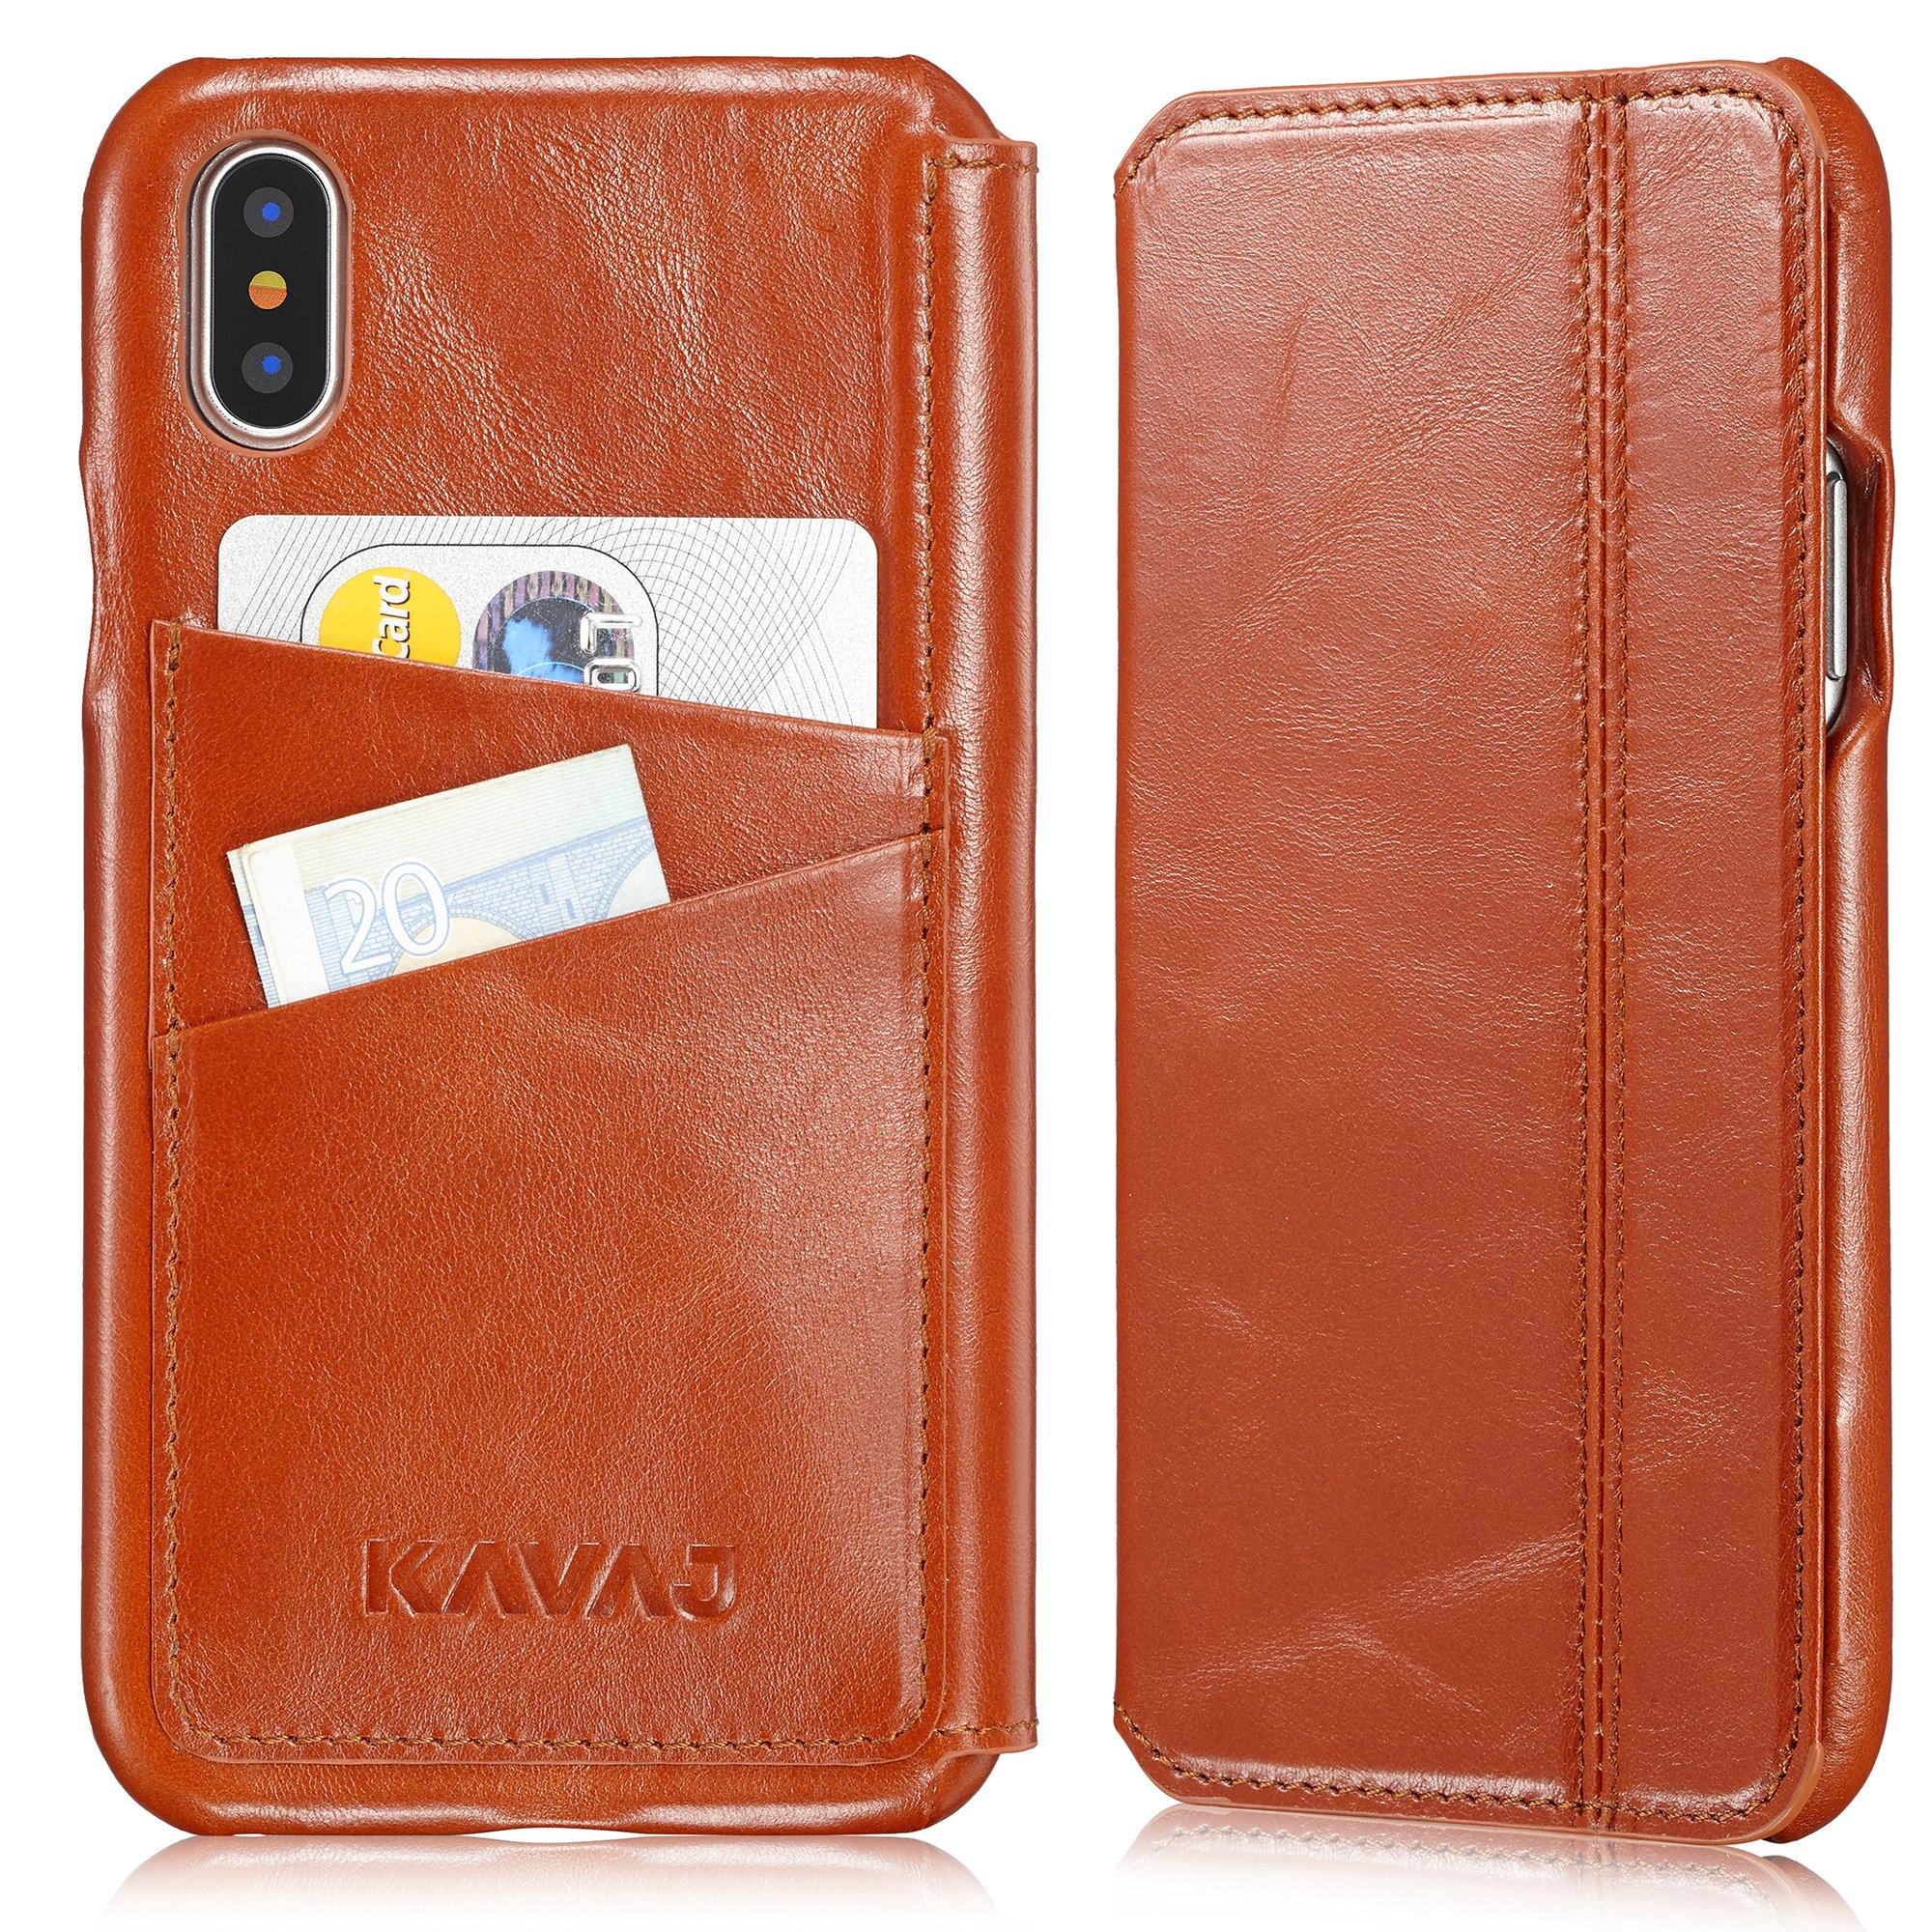 KAVAJ iPhone X Case Leather Dallas Cognac-Brown, Supports Wireless Charging (Qi), Slim-Fit Genuine Leather iPhone X Wallet Case Leather Flip Case Folio With Business Card Holder Cover Book